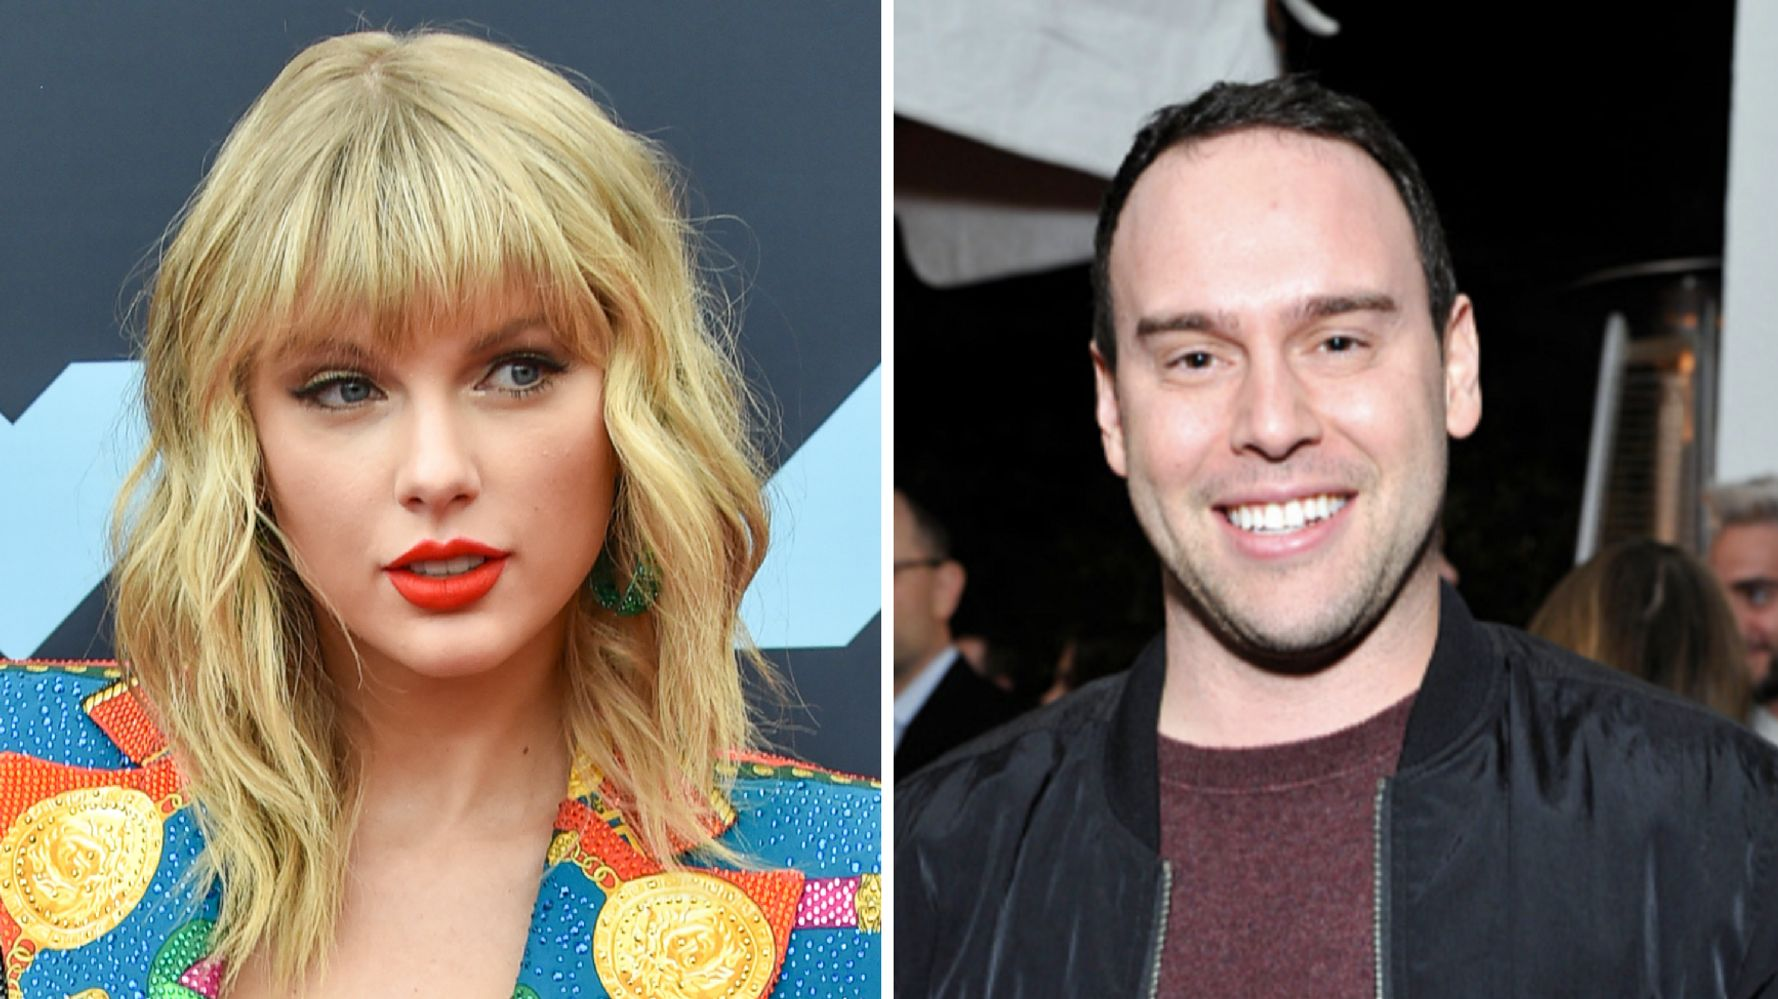 Westlake Legal Group 5dd4171b2100006b7134d66c Scooter Braun Tells Fans 'Kindness Is The Only Response' During Taylor Swift Drama